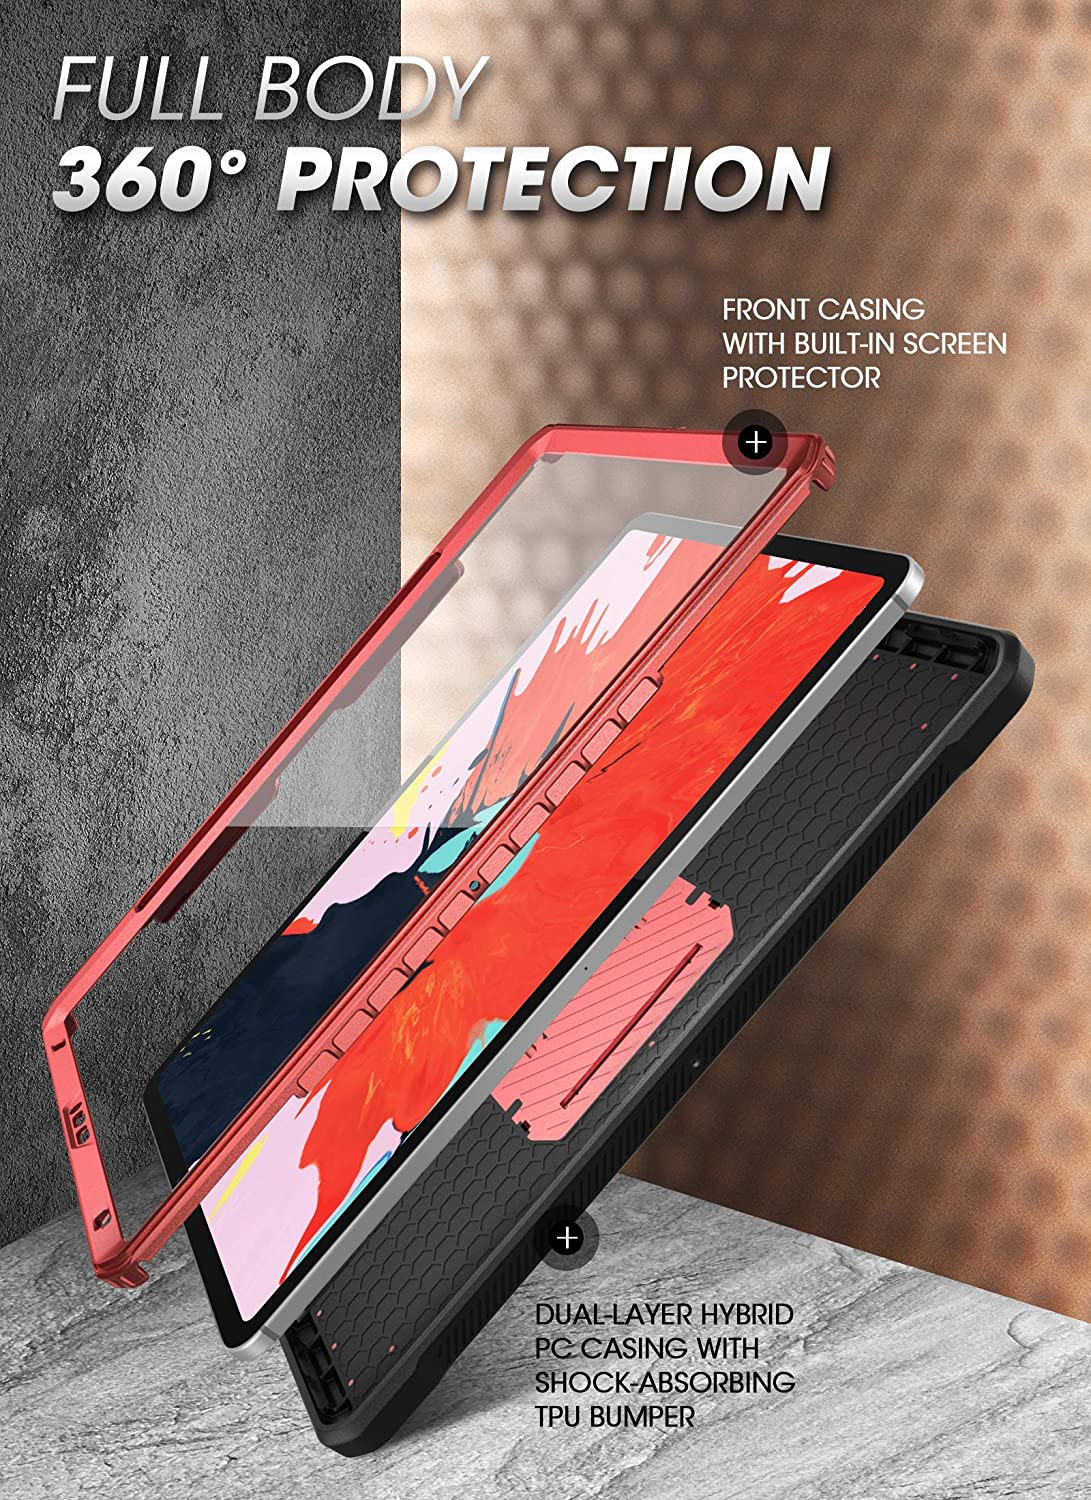 Tilt SUPCASE UB Pro Series Case for iPad Pro 12.9 2020 Support Apple Pencil Charging with Built-in Screen Protector Full-Body Rugged Kickstand Protective Case for iPad Pro 12.9 inch 2020 Release